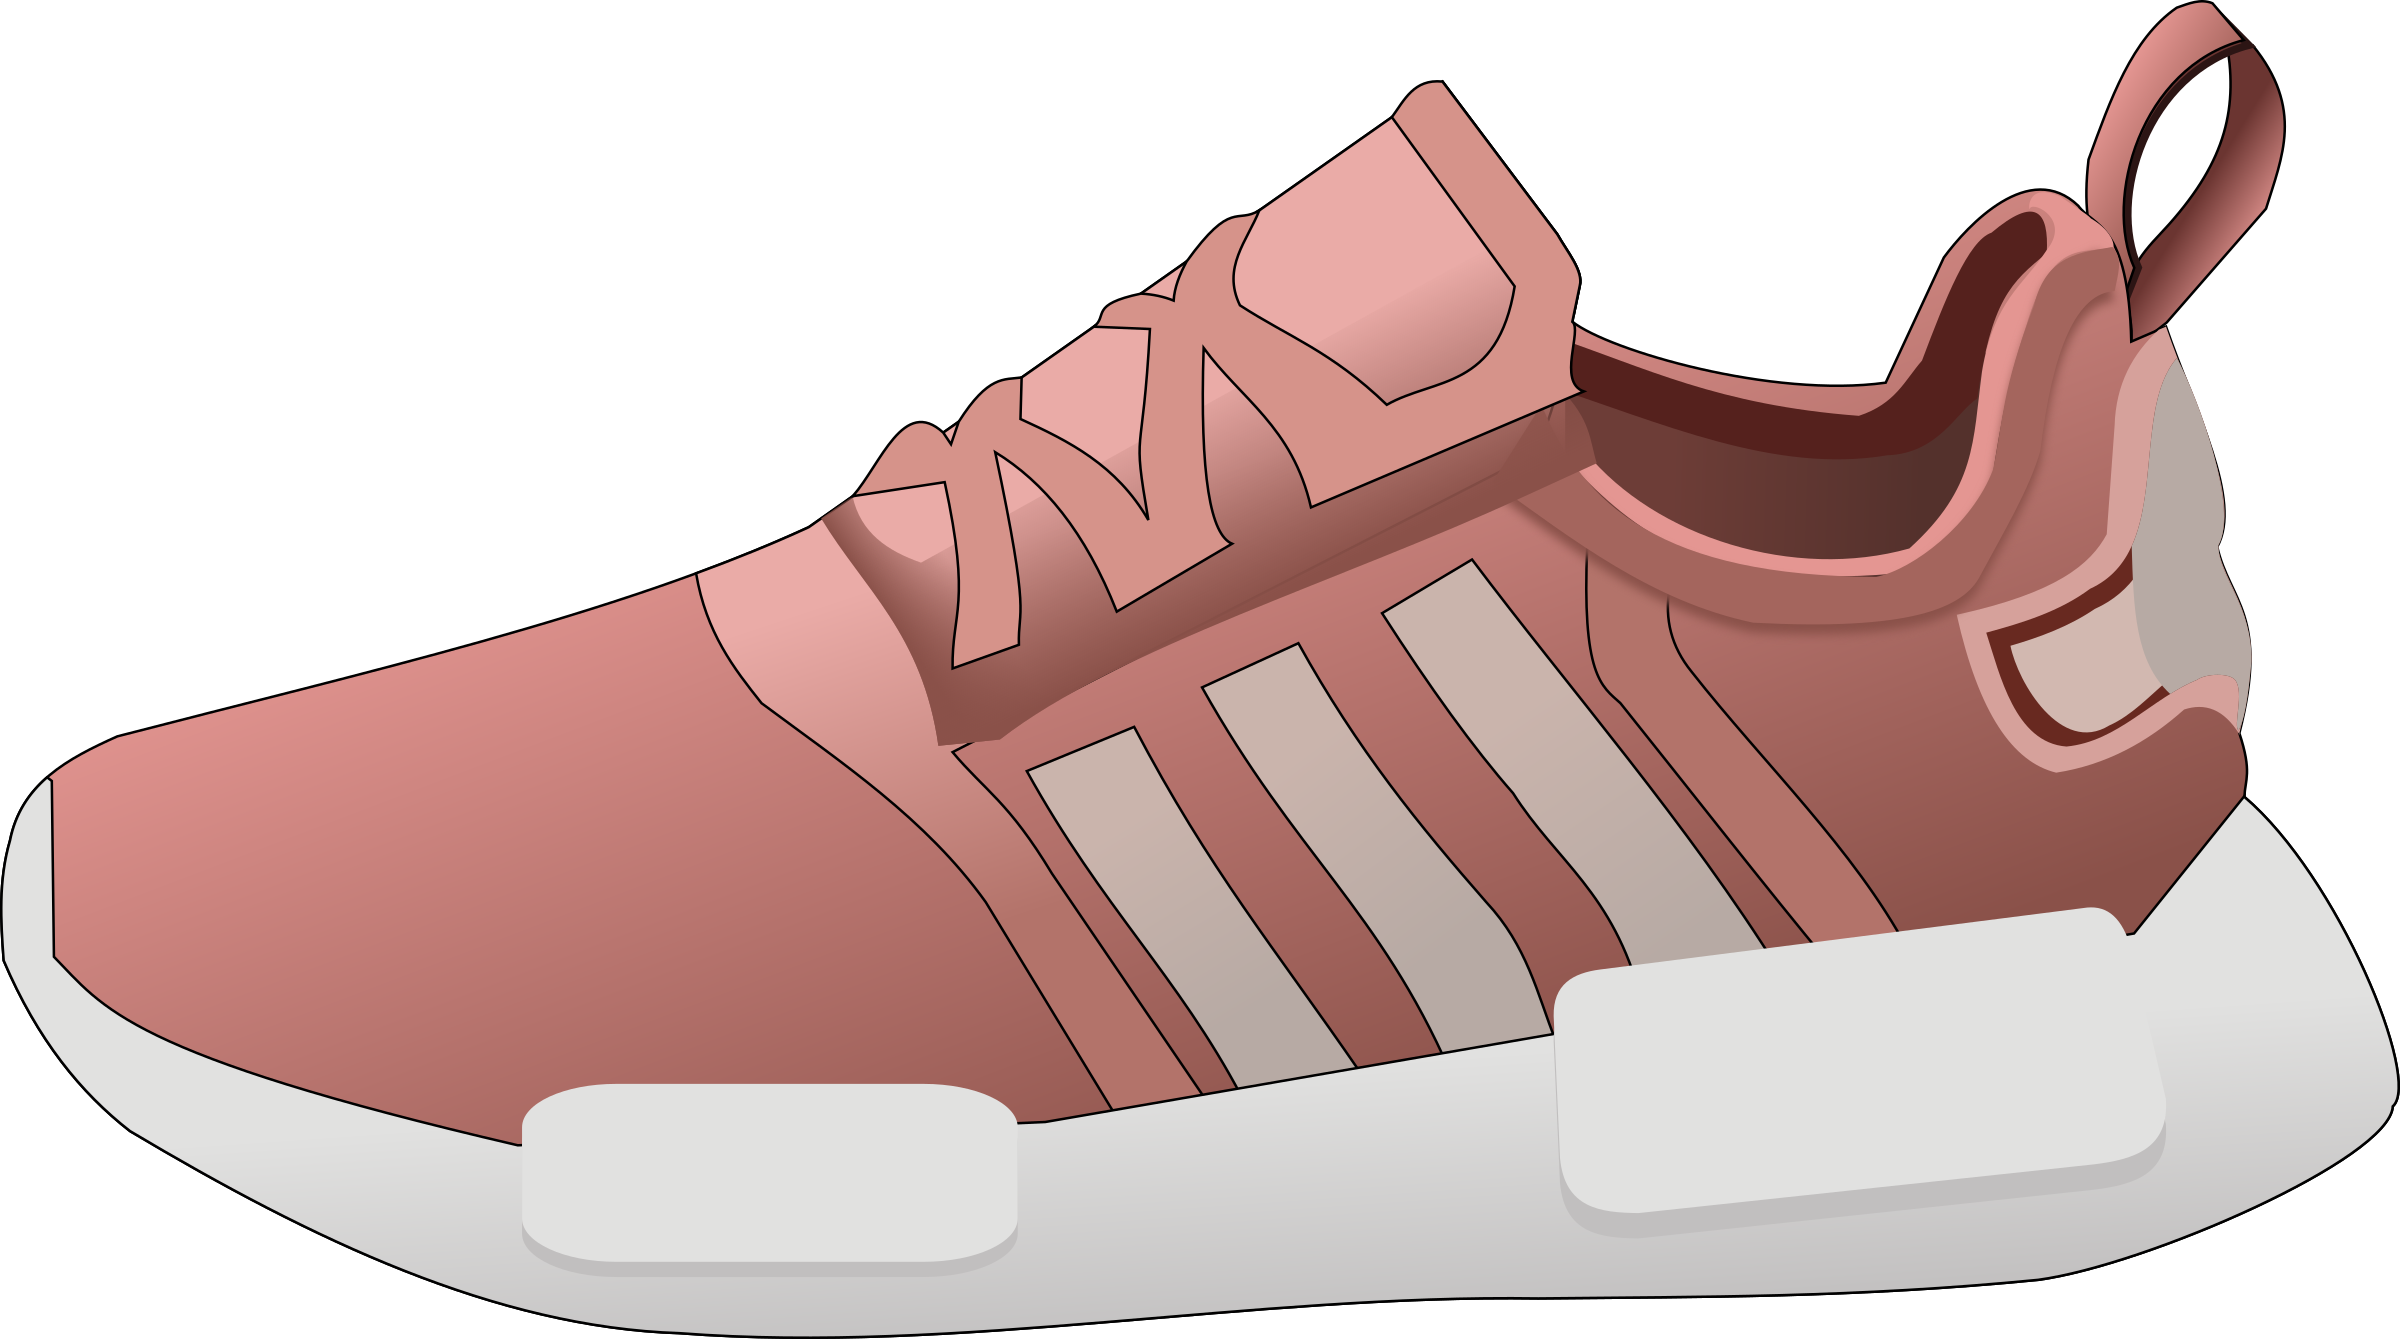 Shoe Sneakers Adidas Clip art.